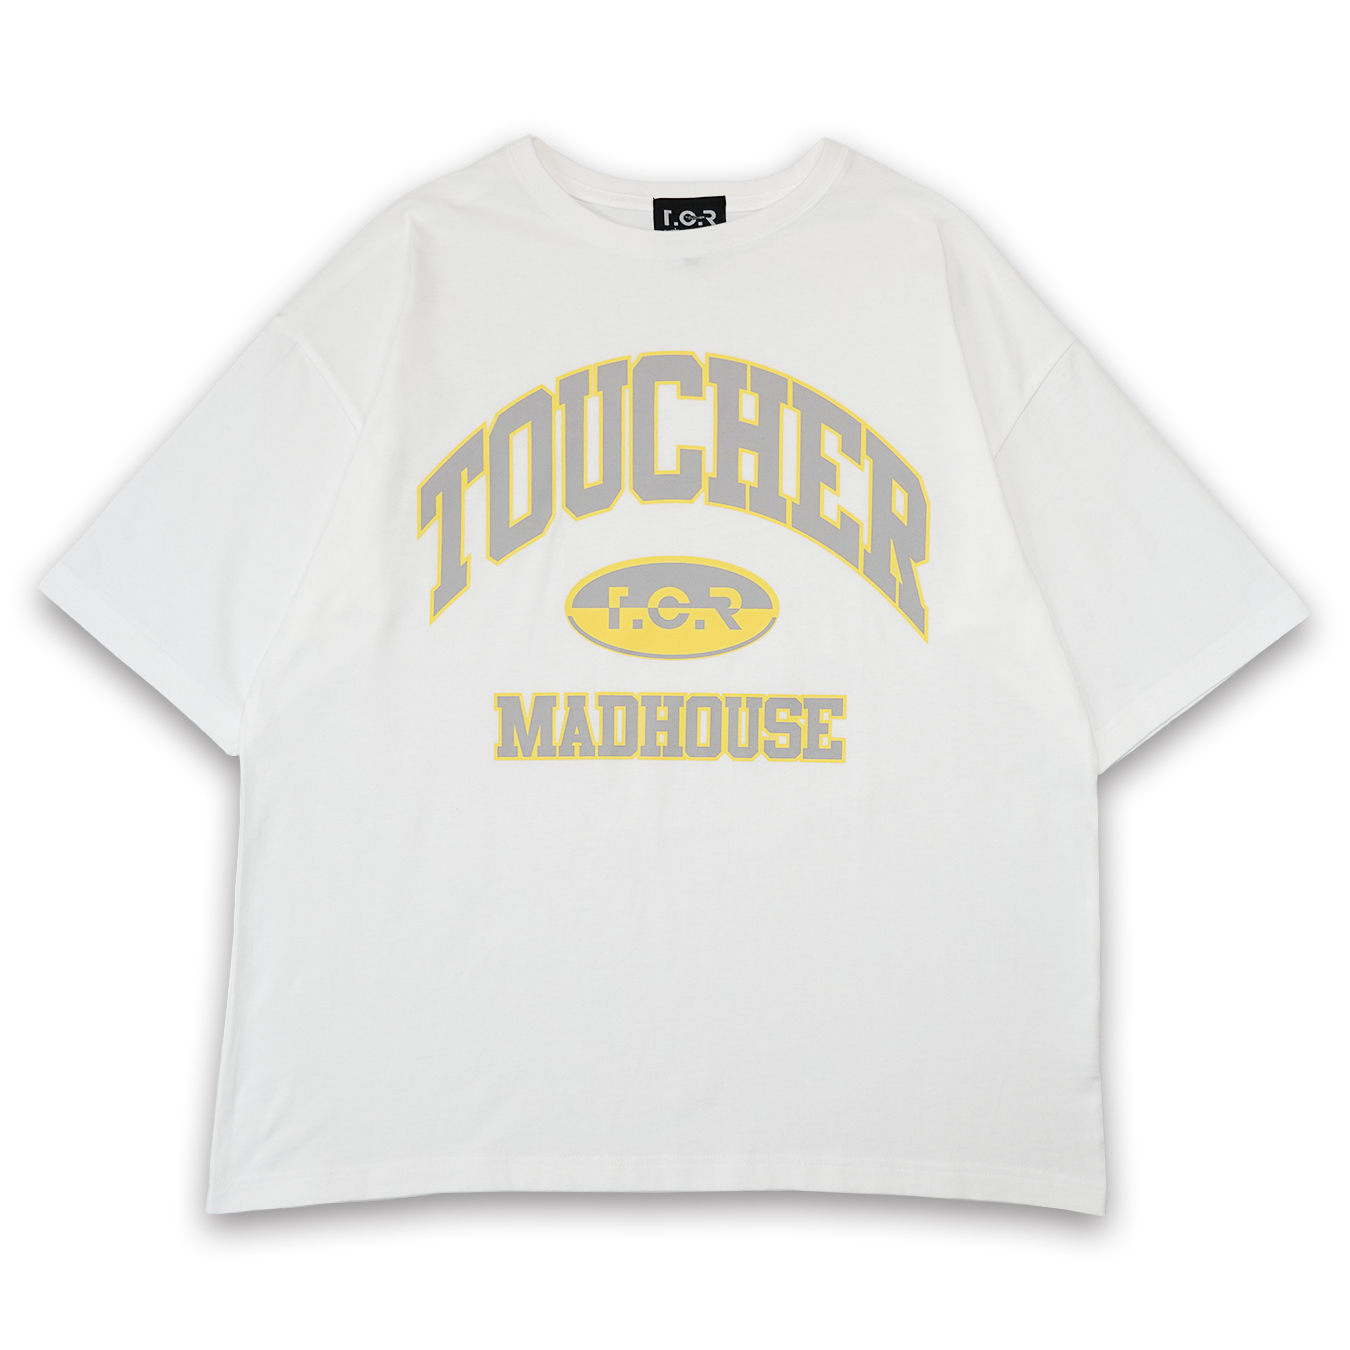 T.C.R MADHOUSE S/S TEE - WHITE / GRAY / YELLOW